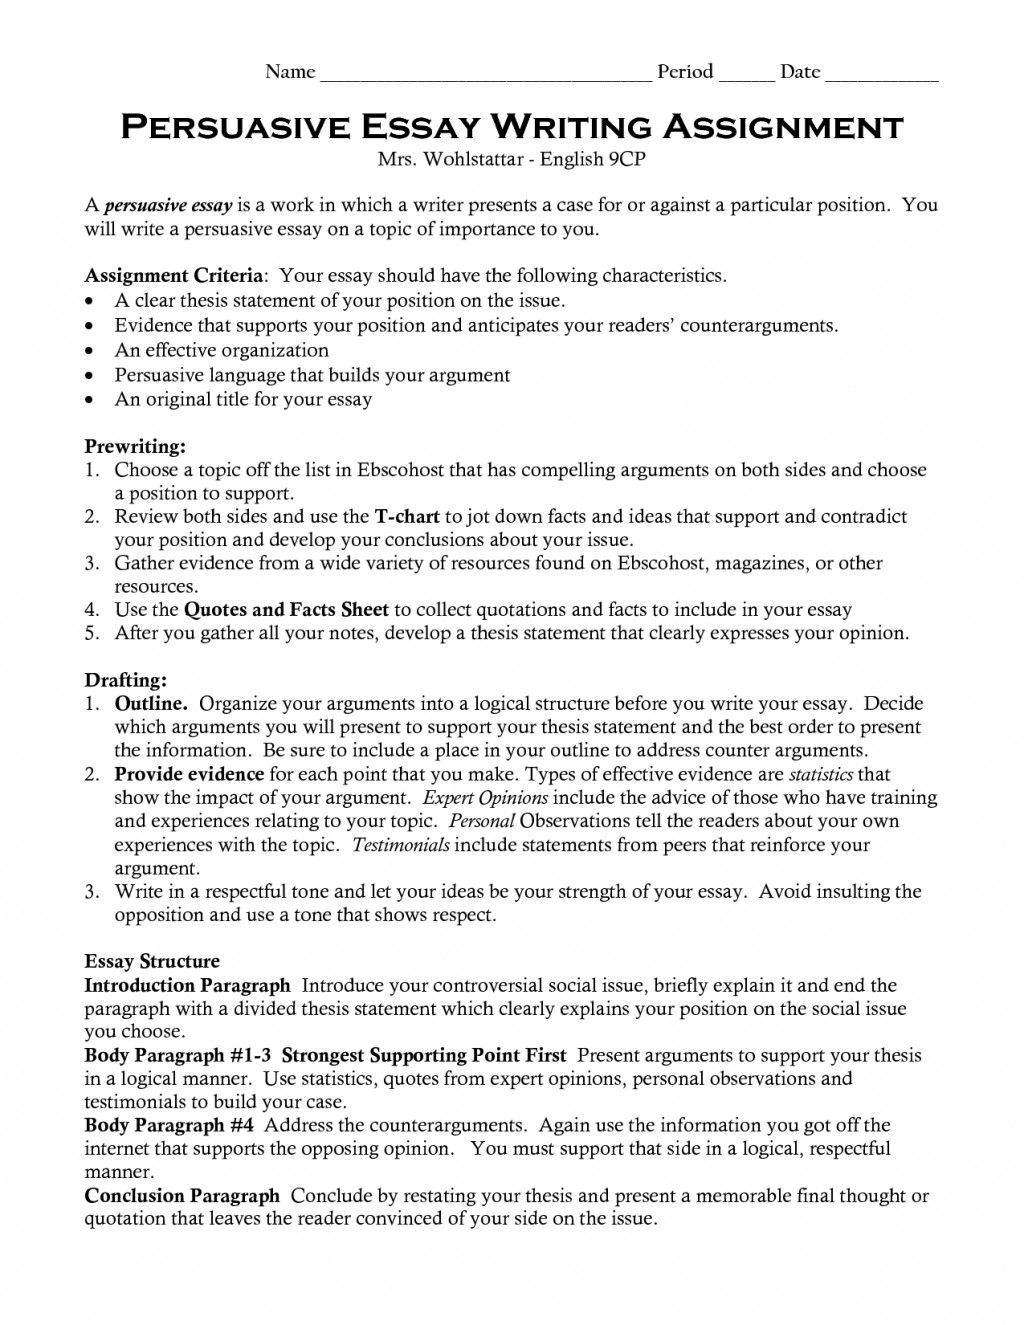 010 Essay Example Writer Outstanding Com My Writer.com Pro Writing Reviews Comparative Large